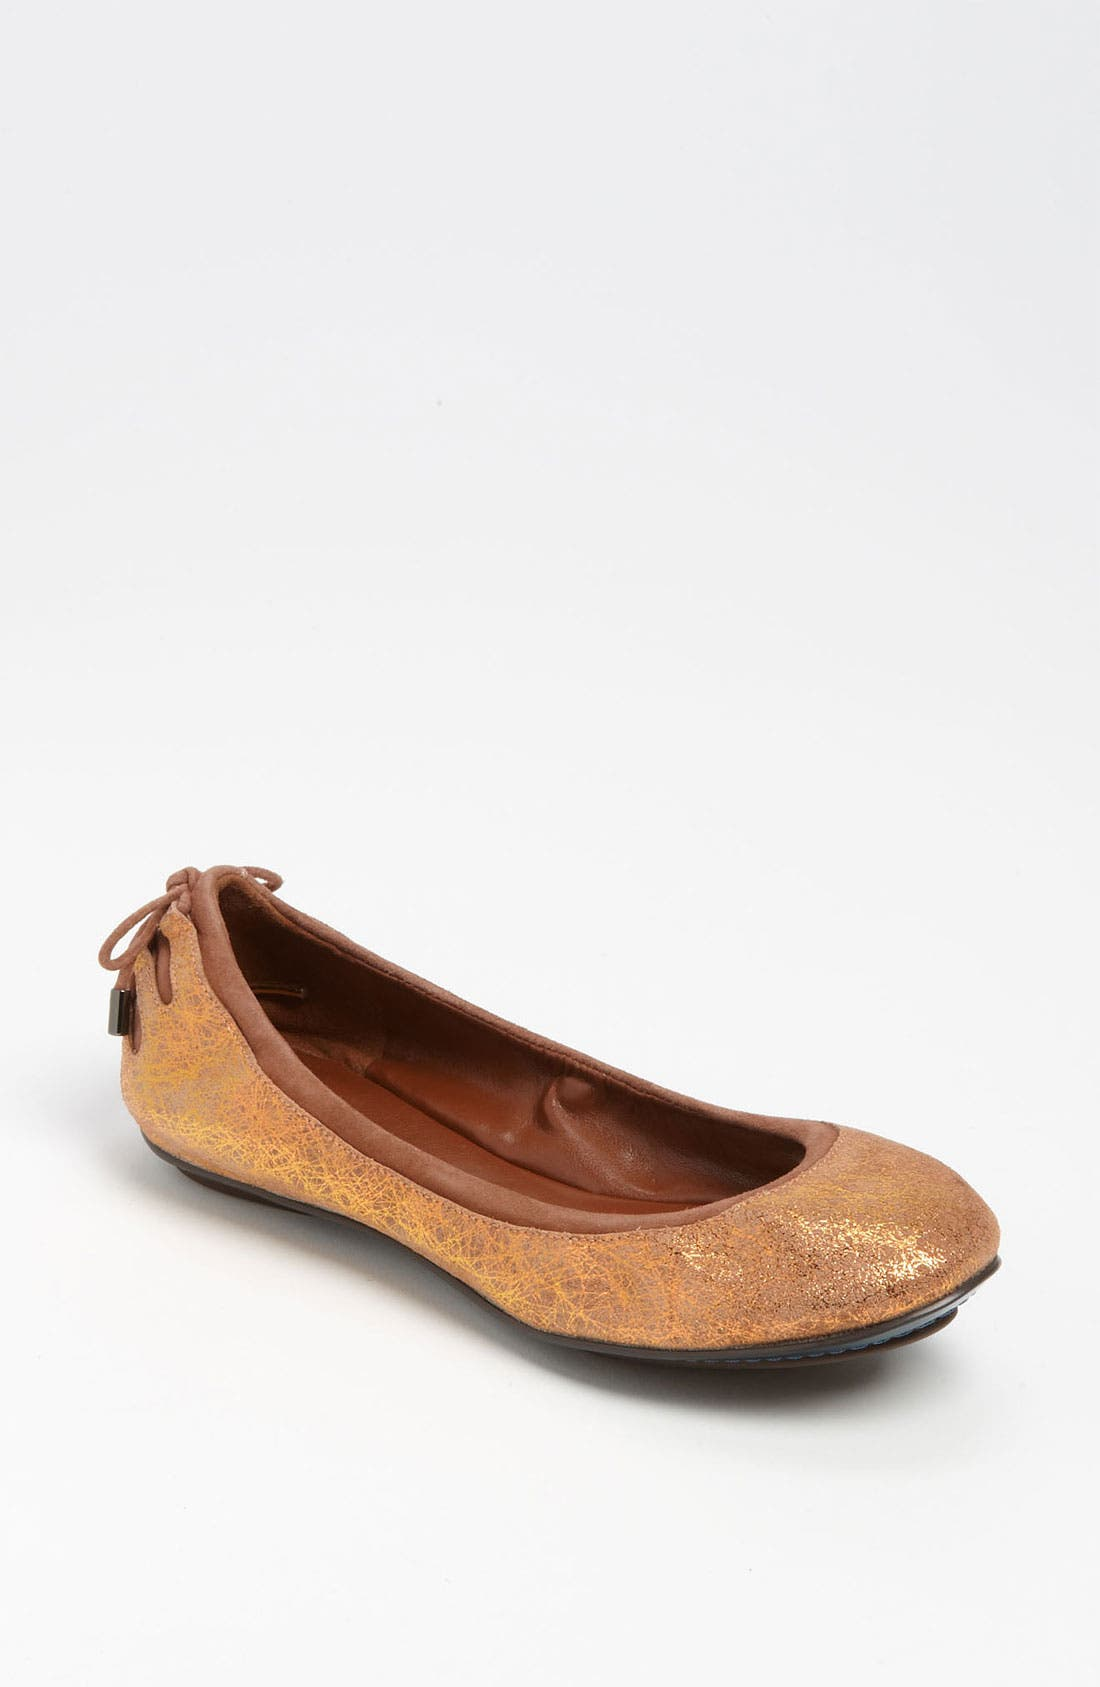 ,                             Maria Sharapova by Cole Haan 'Air Bacara' Flat,                             Main thumbnail 99, color,                             800